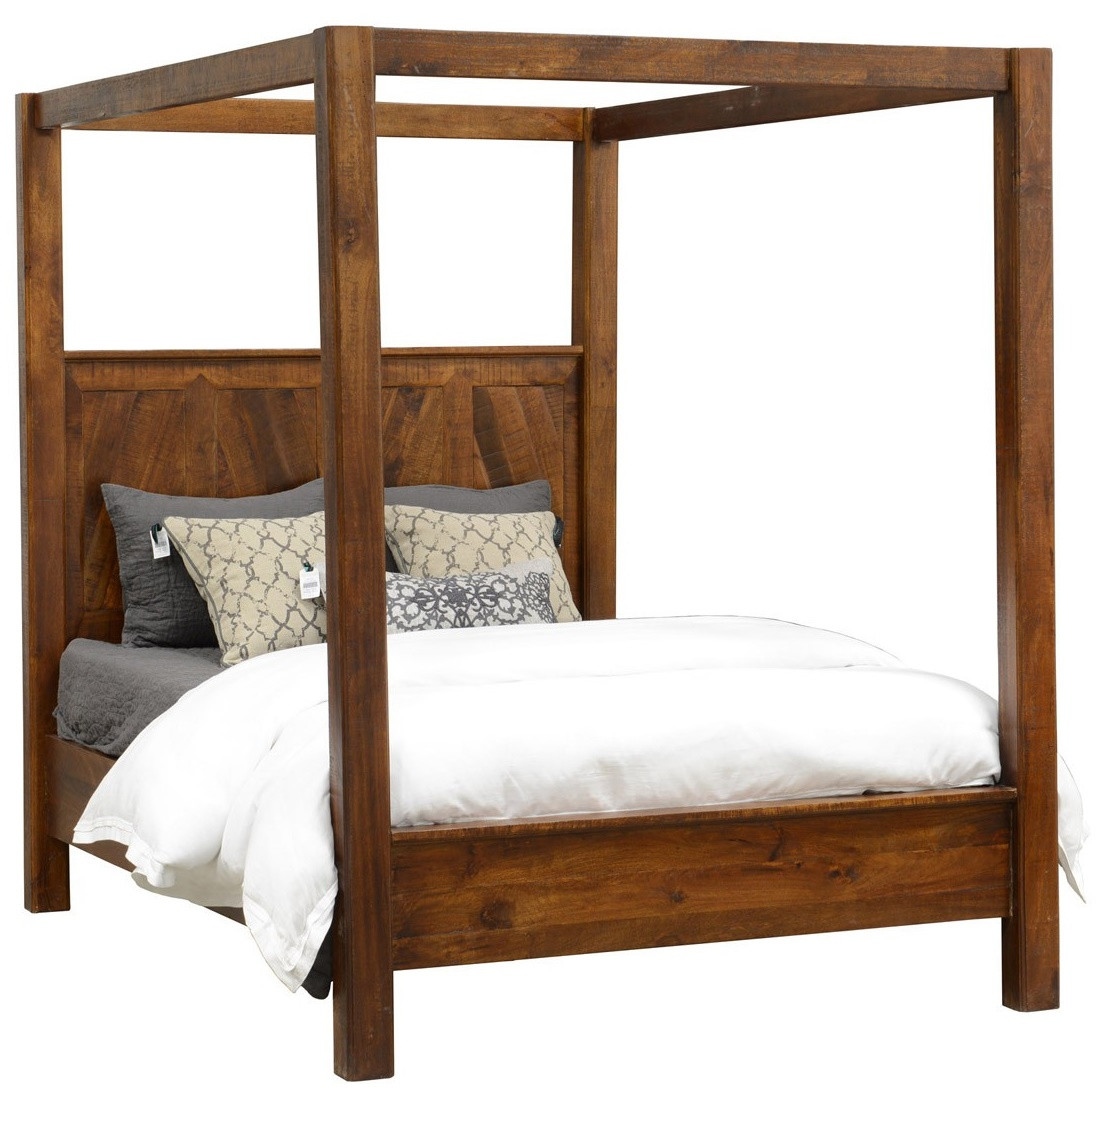 Wood Canopy Beds kosas california king wood canopy bed | zin home